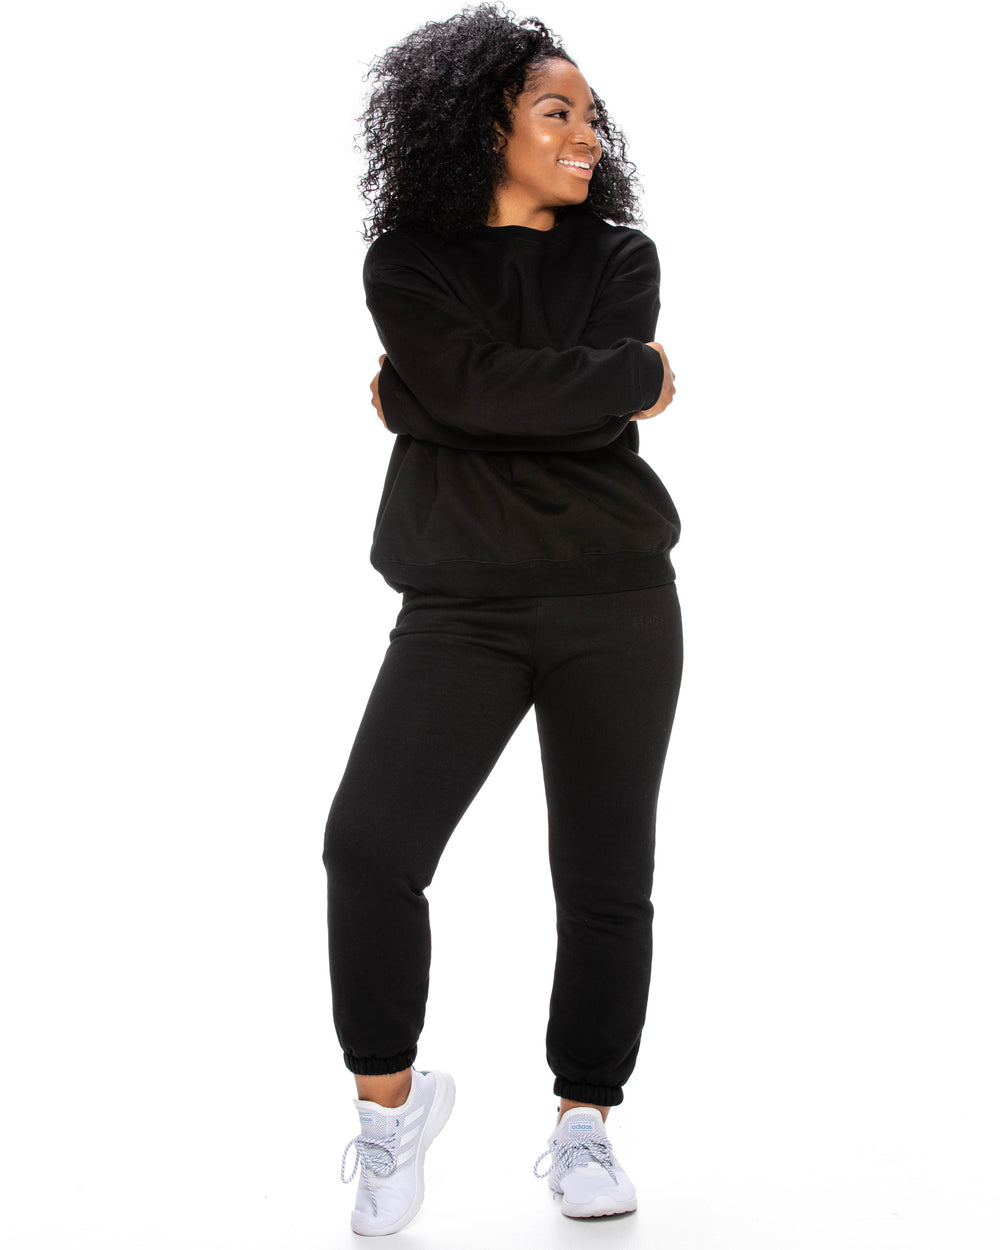 Oversized Sweats - Black